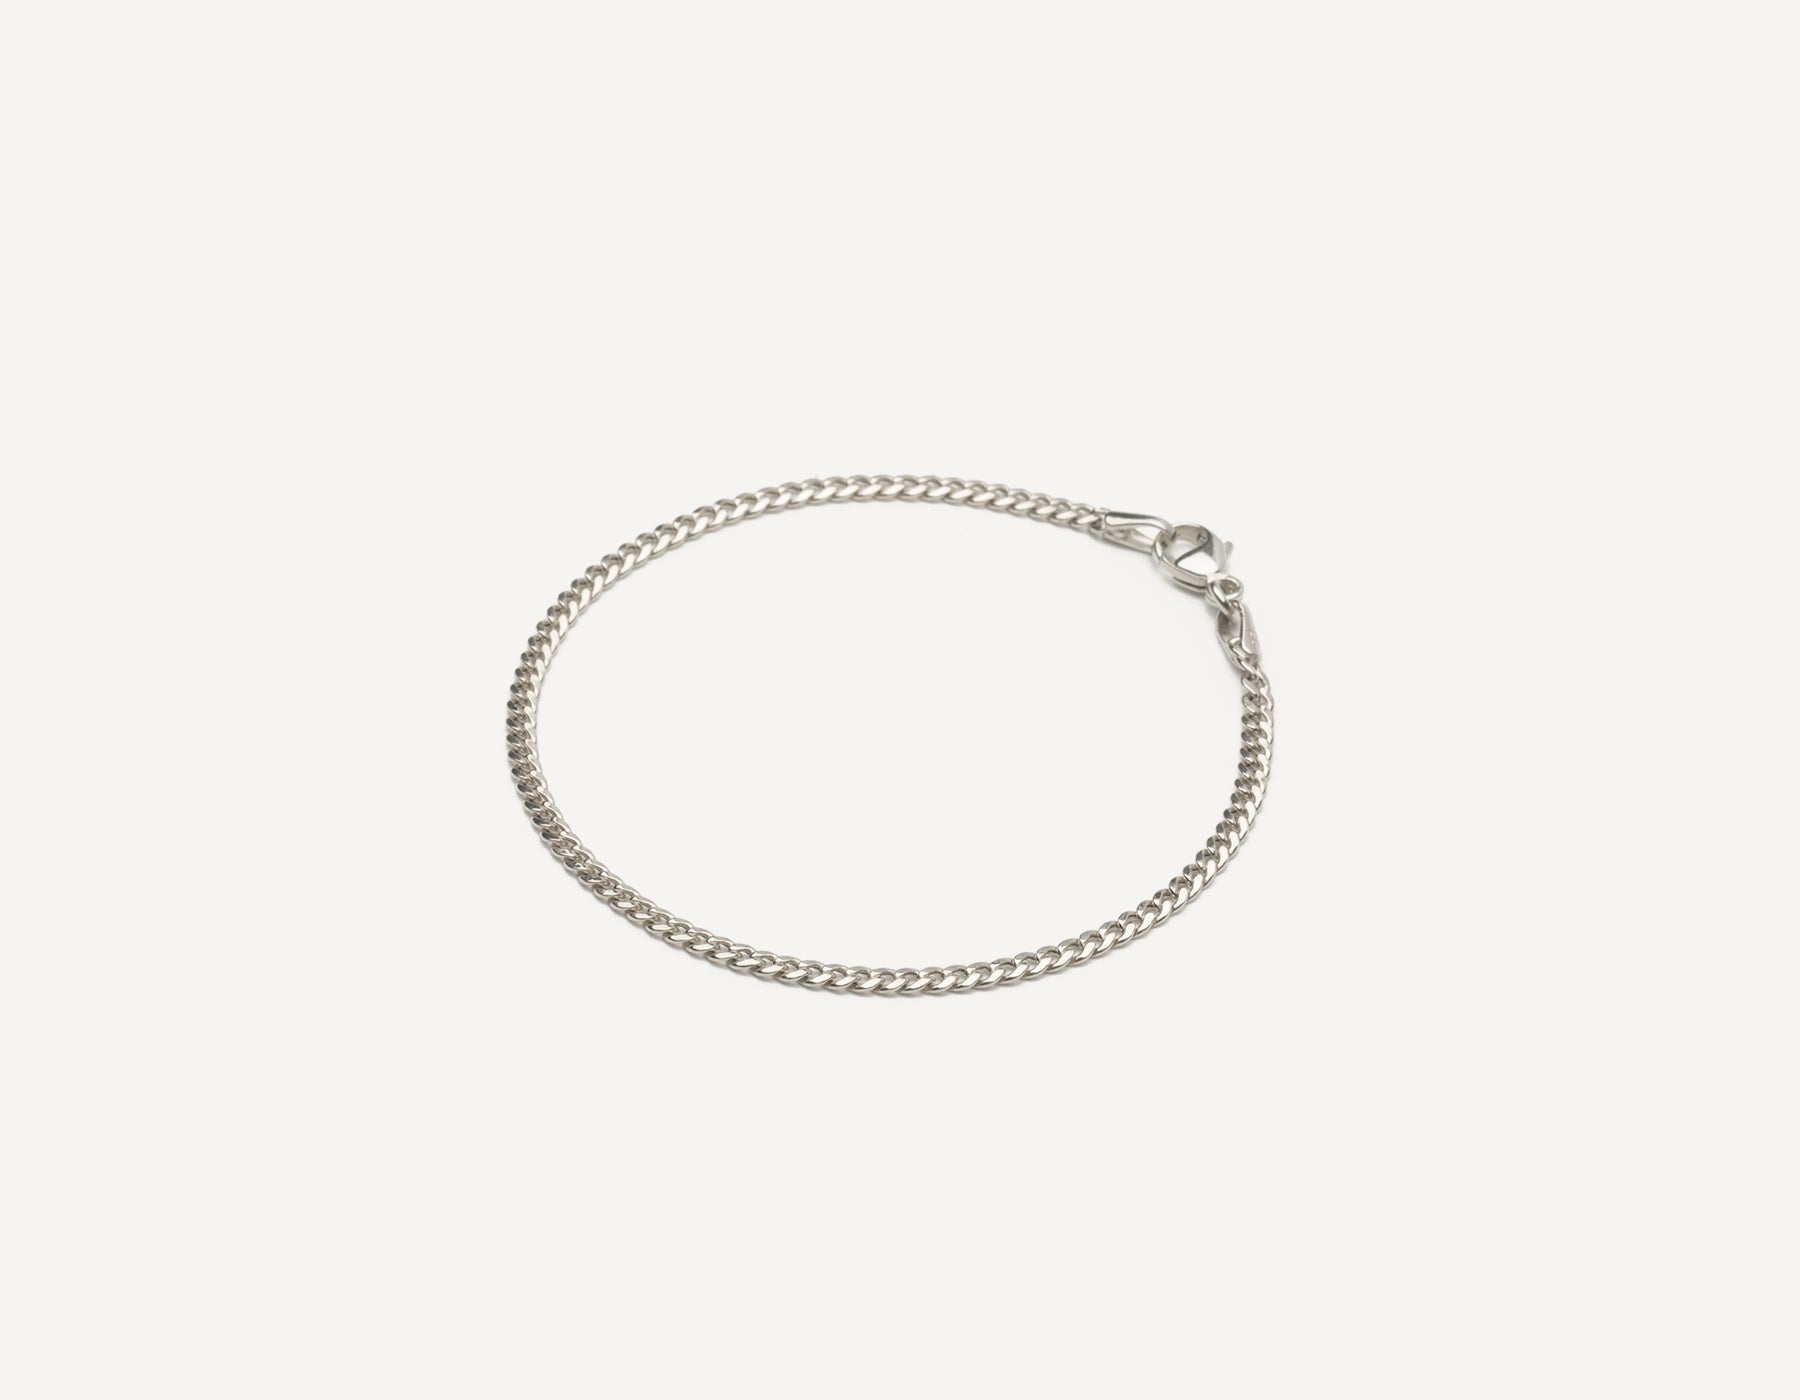 Vrai & Oro 14k solid gold modern minimalist Cuban Link bracelet with lobster clasp, 14K White Gold